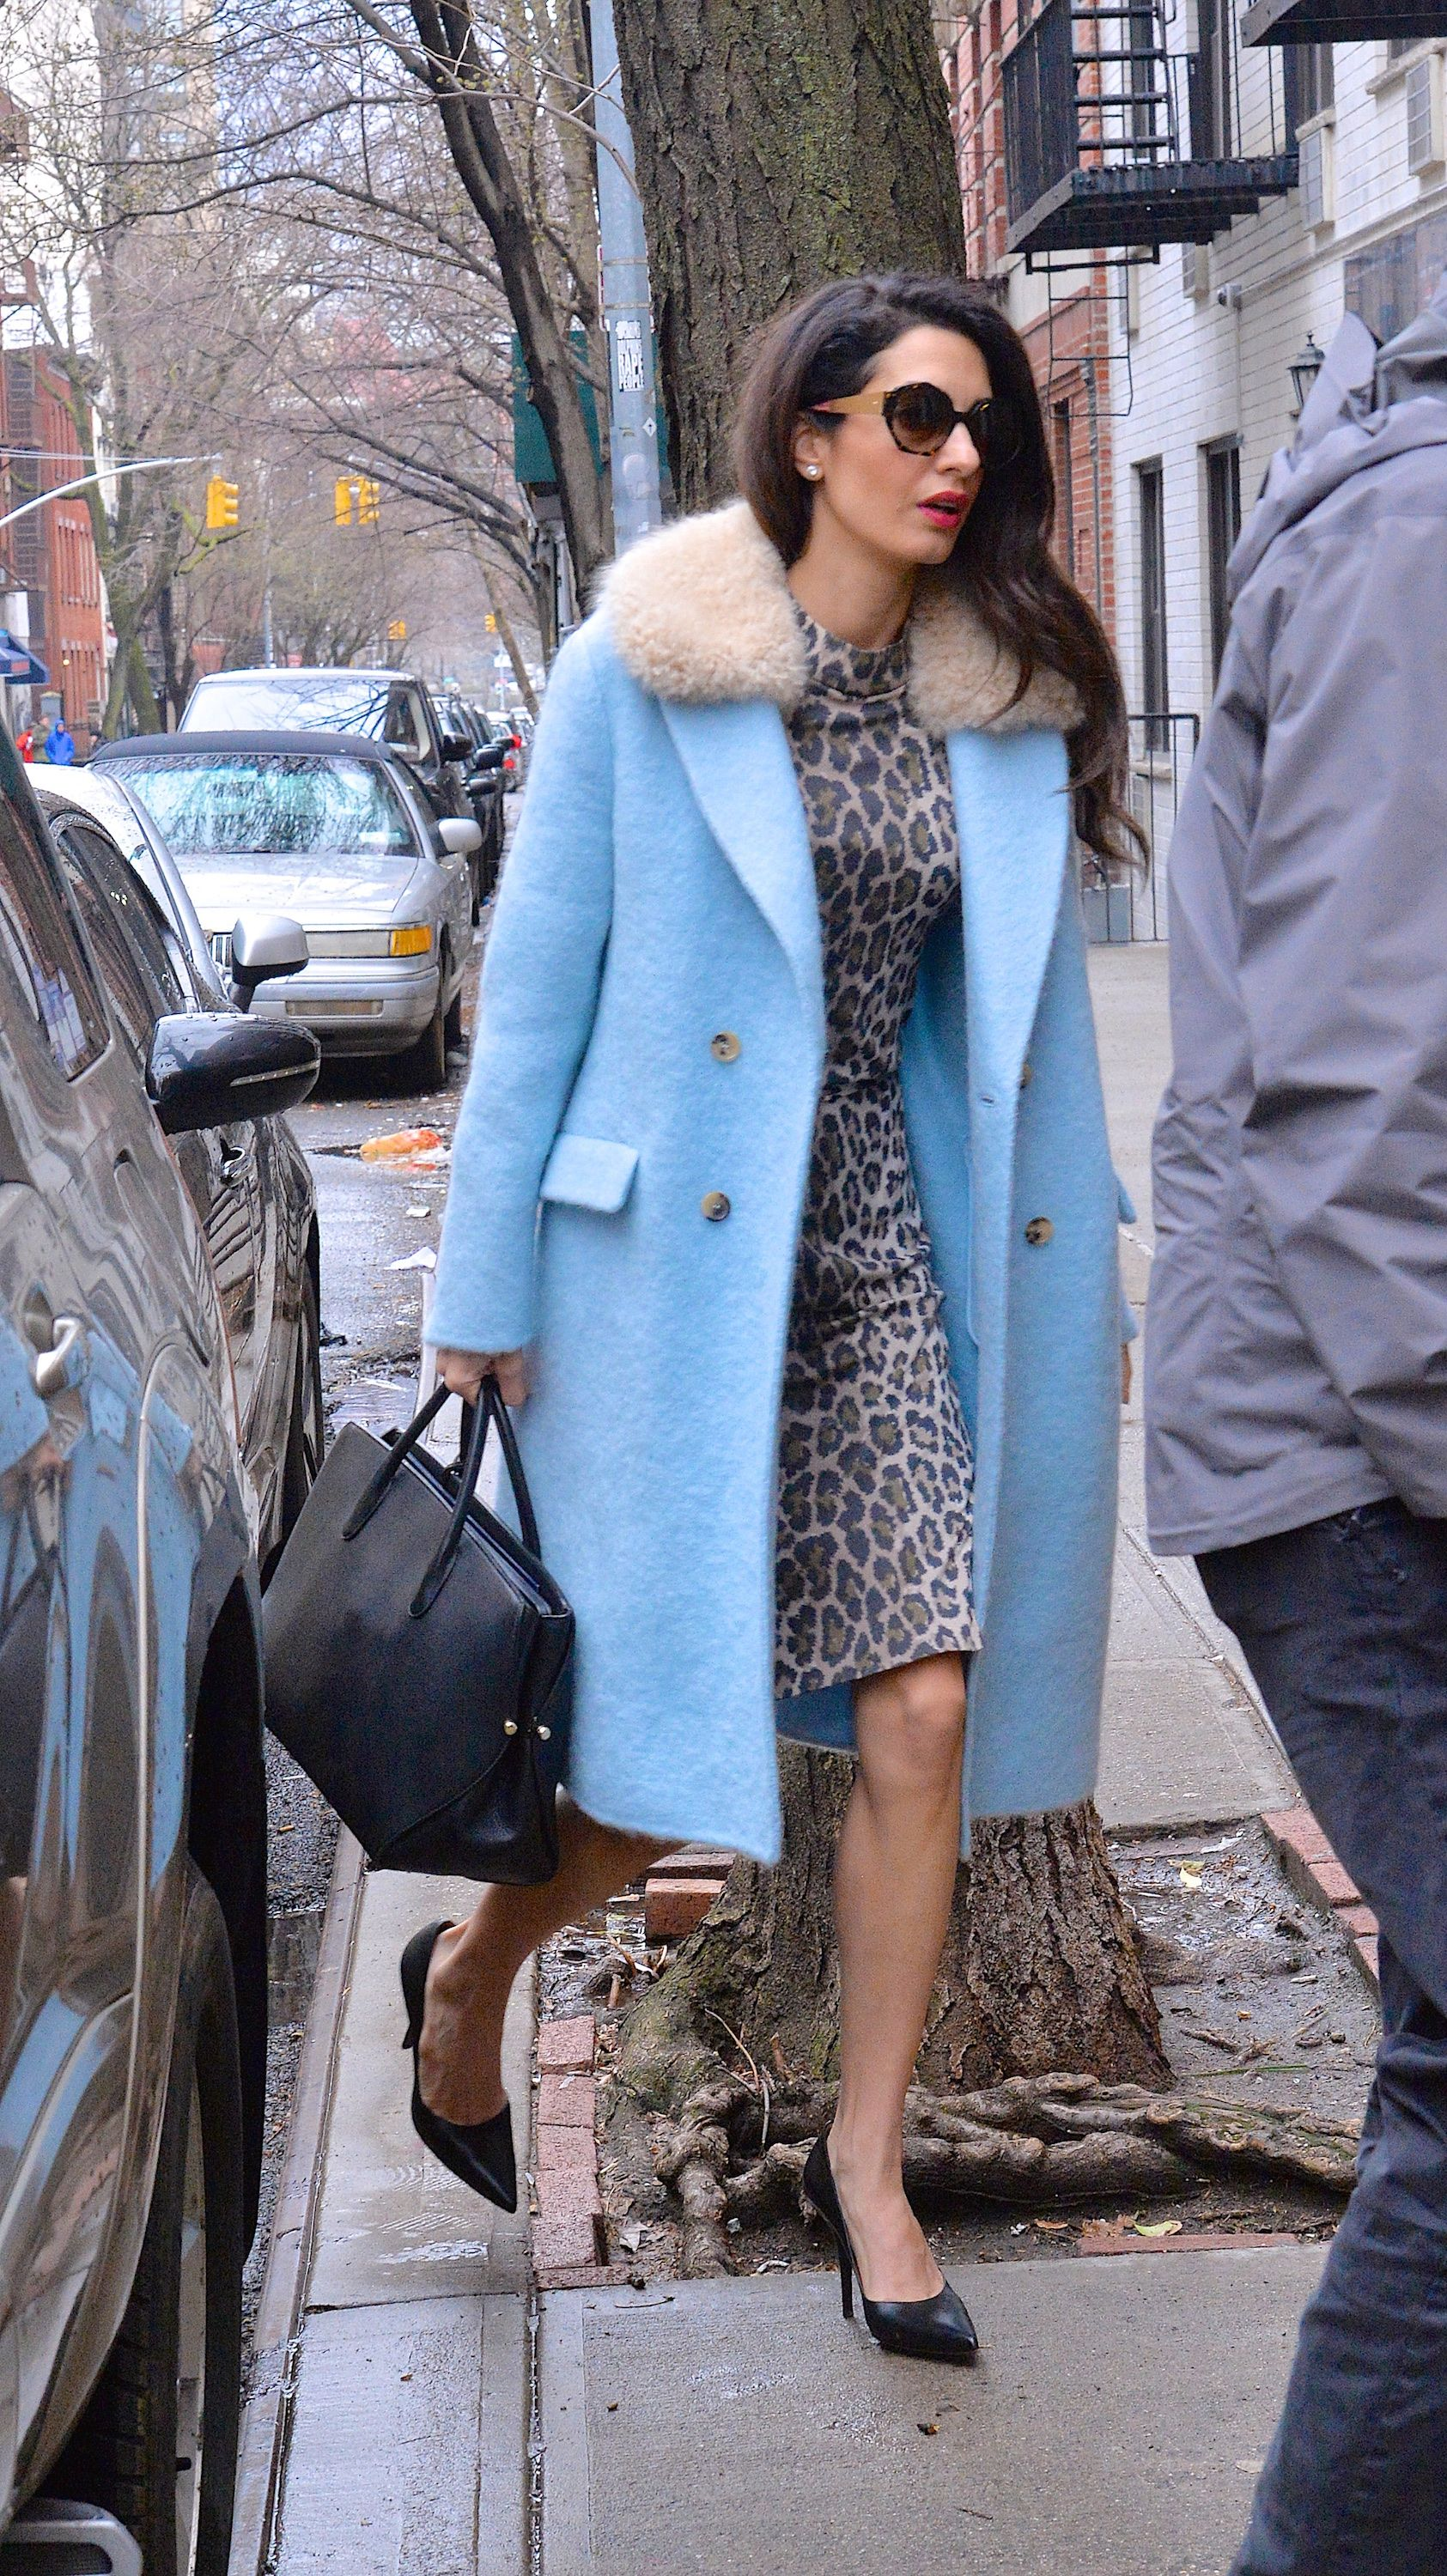 April 6, 2018 In a powder blue coat and cheetah dress while walking around New York City.